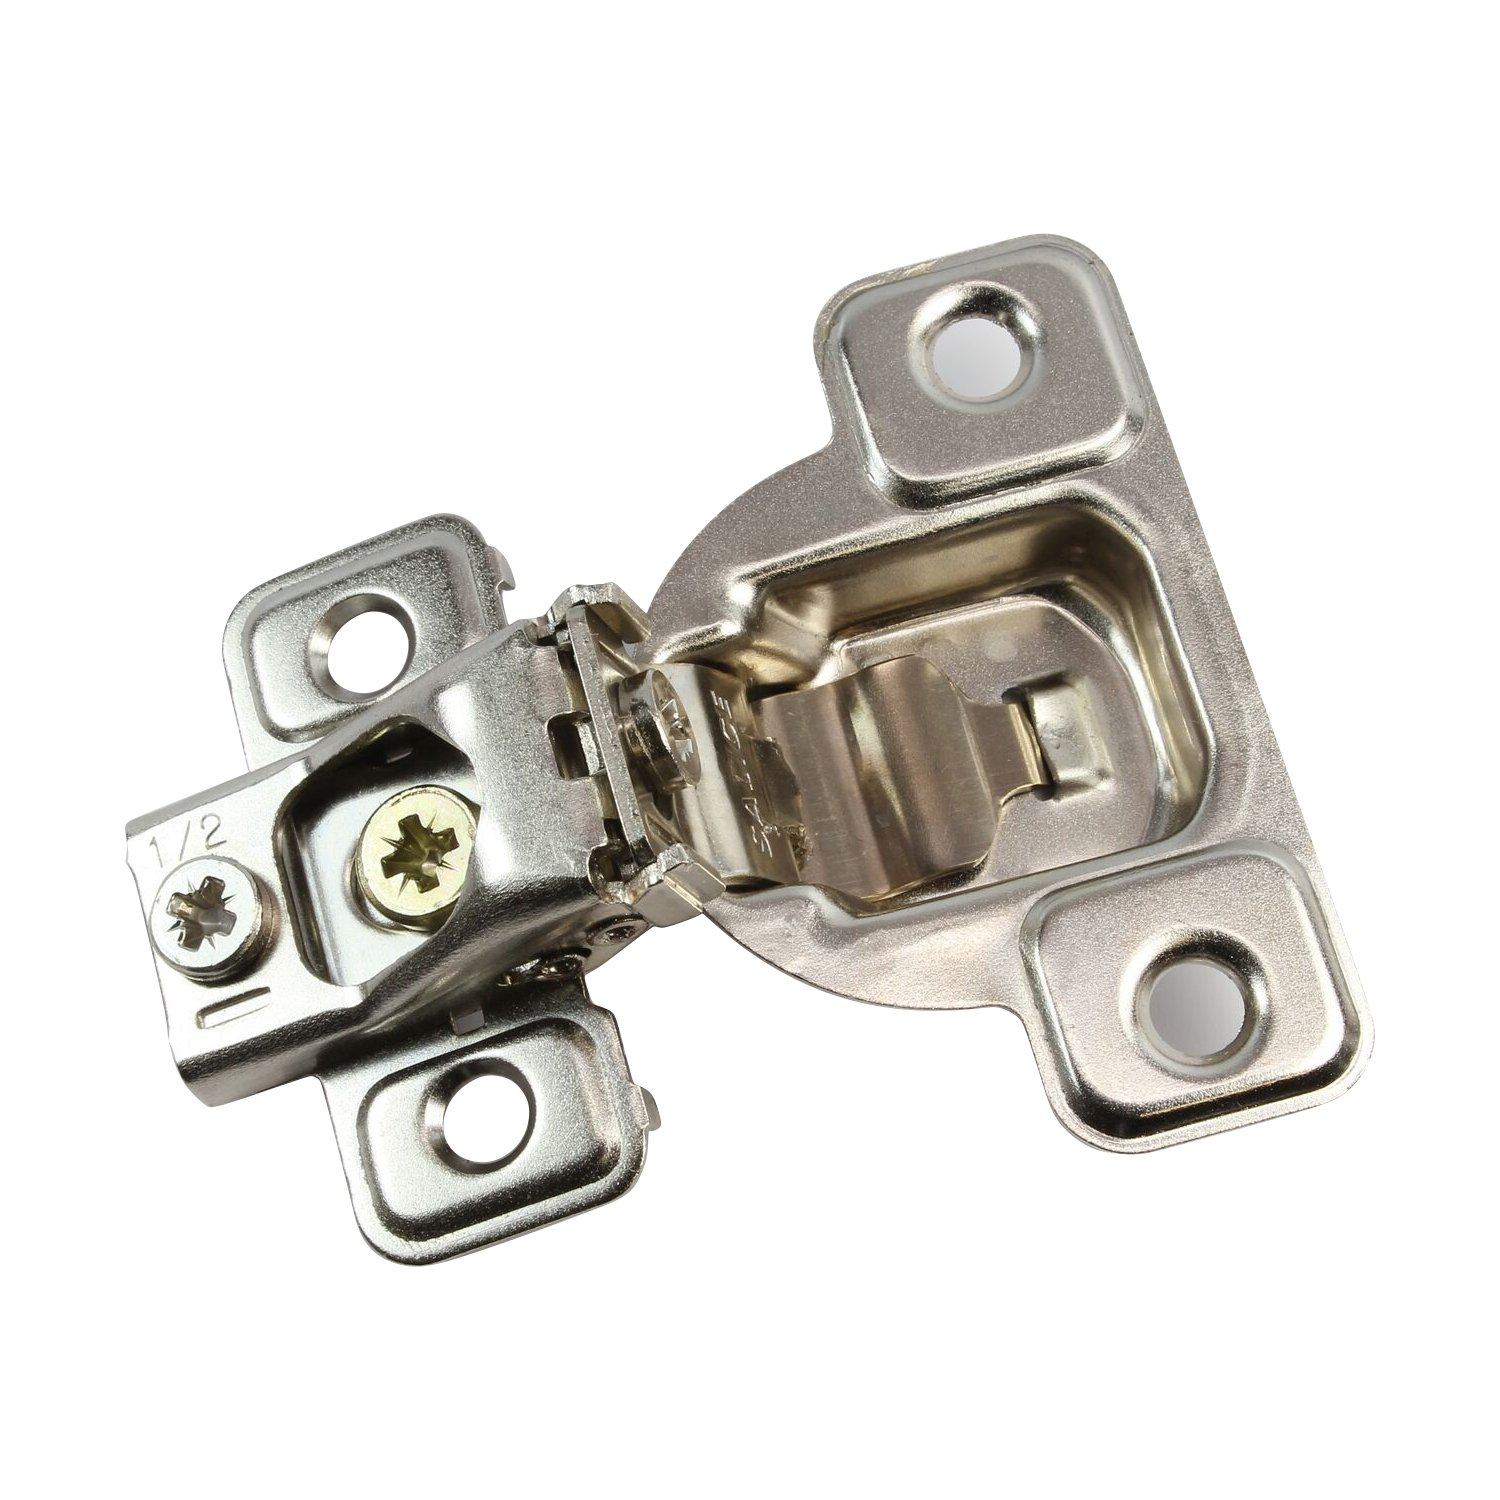 5 Pack Salice 106 Degree Excenthree 1/2'' Overlay Screw On Self Close Cabinet Hinge with 3 Cam Adjustment CSP3799XR